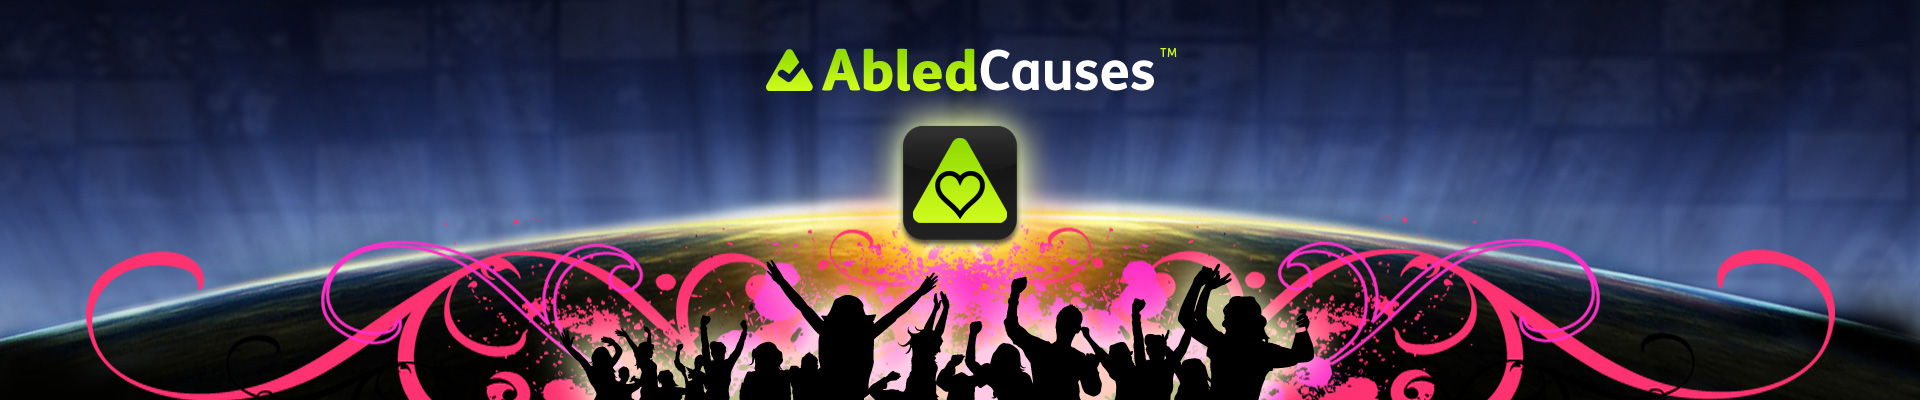 AbledCauses banner shows the silhouettes of peoplecampaigning for a cause with their arms outstretched against white to fushia light effects in the background under the AbledCauses icon which consists of the outline of a heart in the middle of the gradient green rounded triangle that makes up the Abled icon.